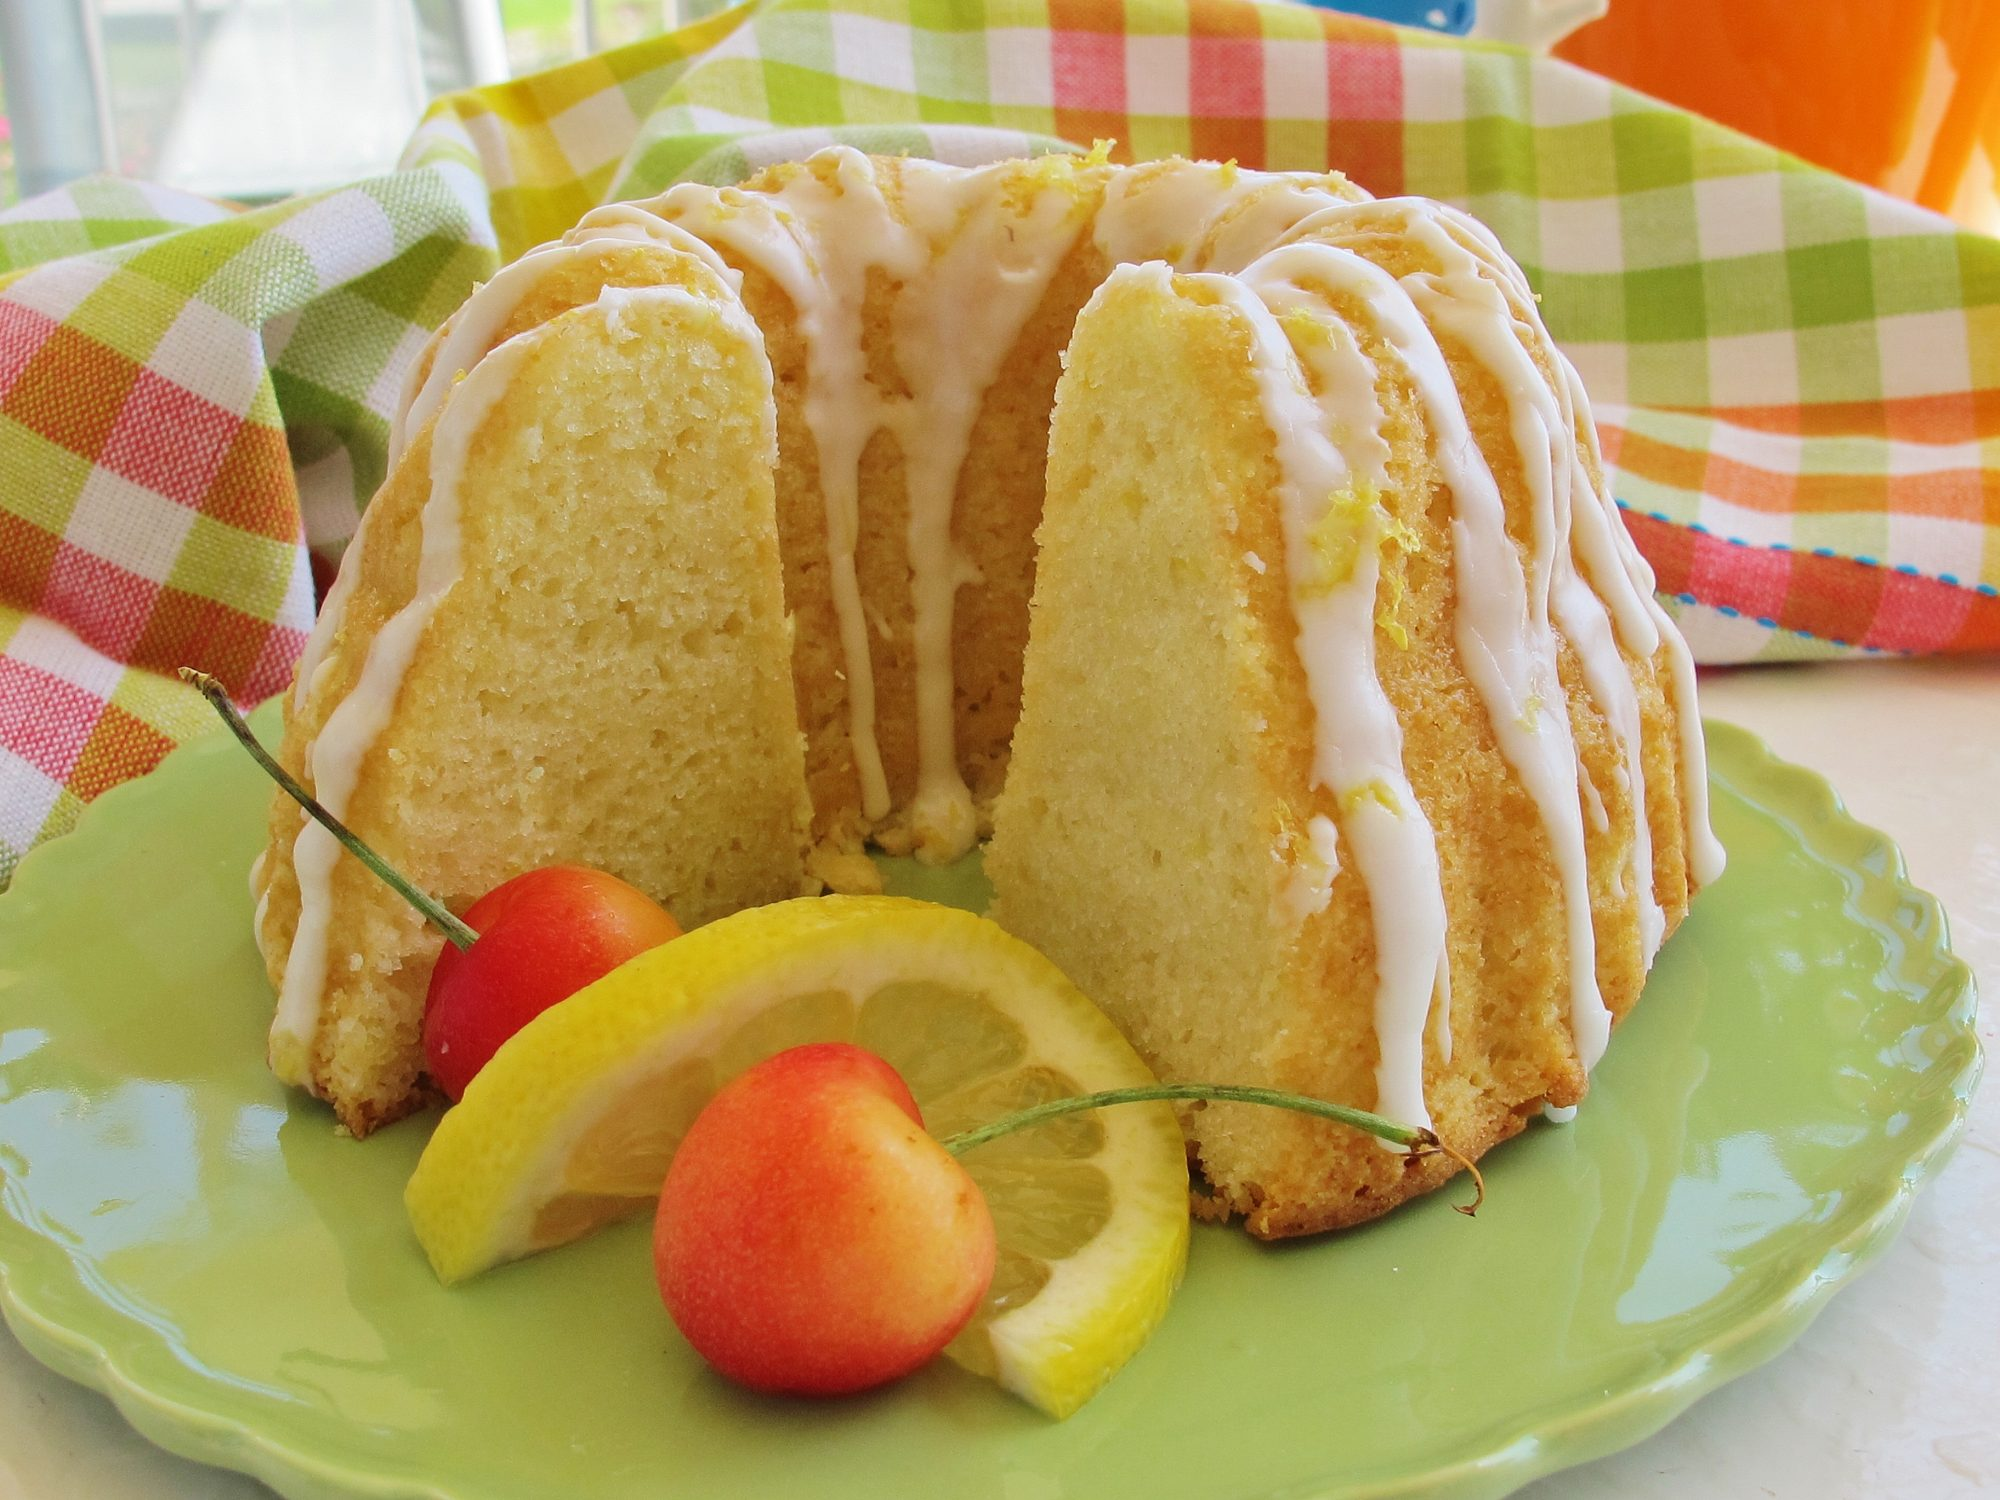 1264849 Quick and Easy Summer Limoncello Cake 238202 naples34102